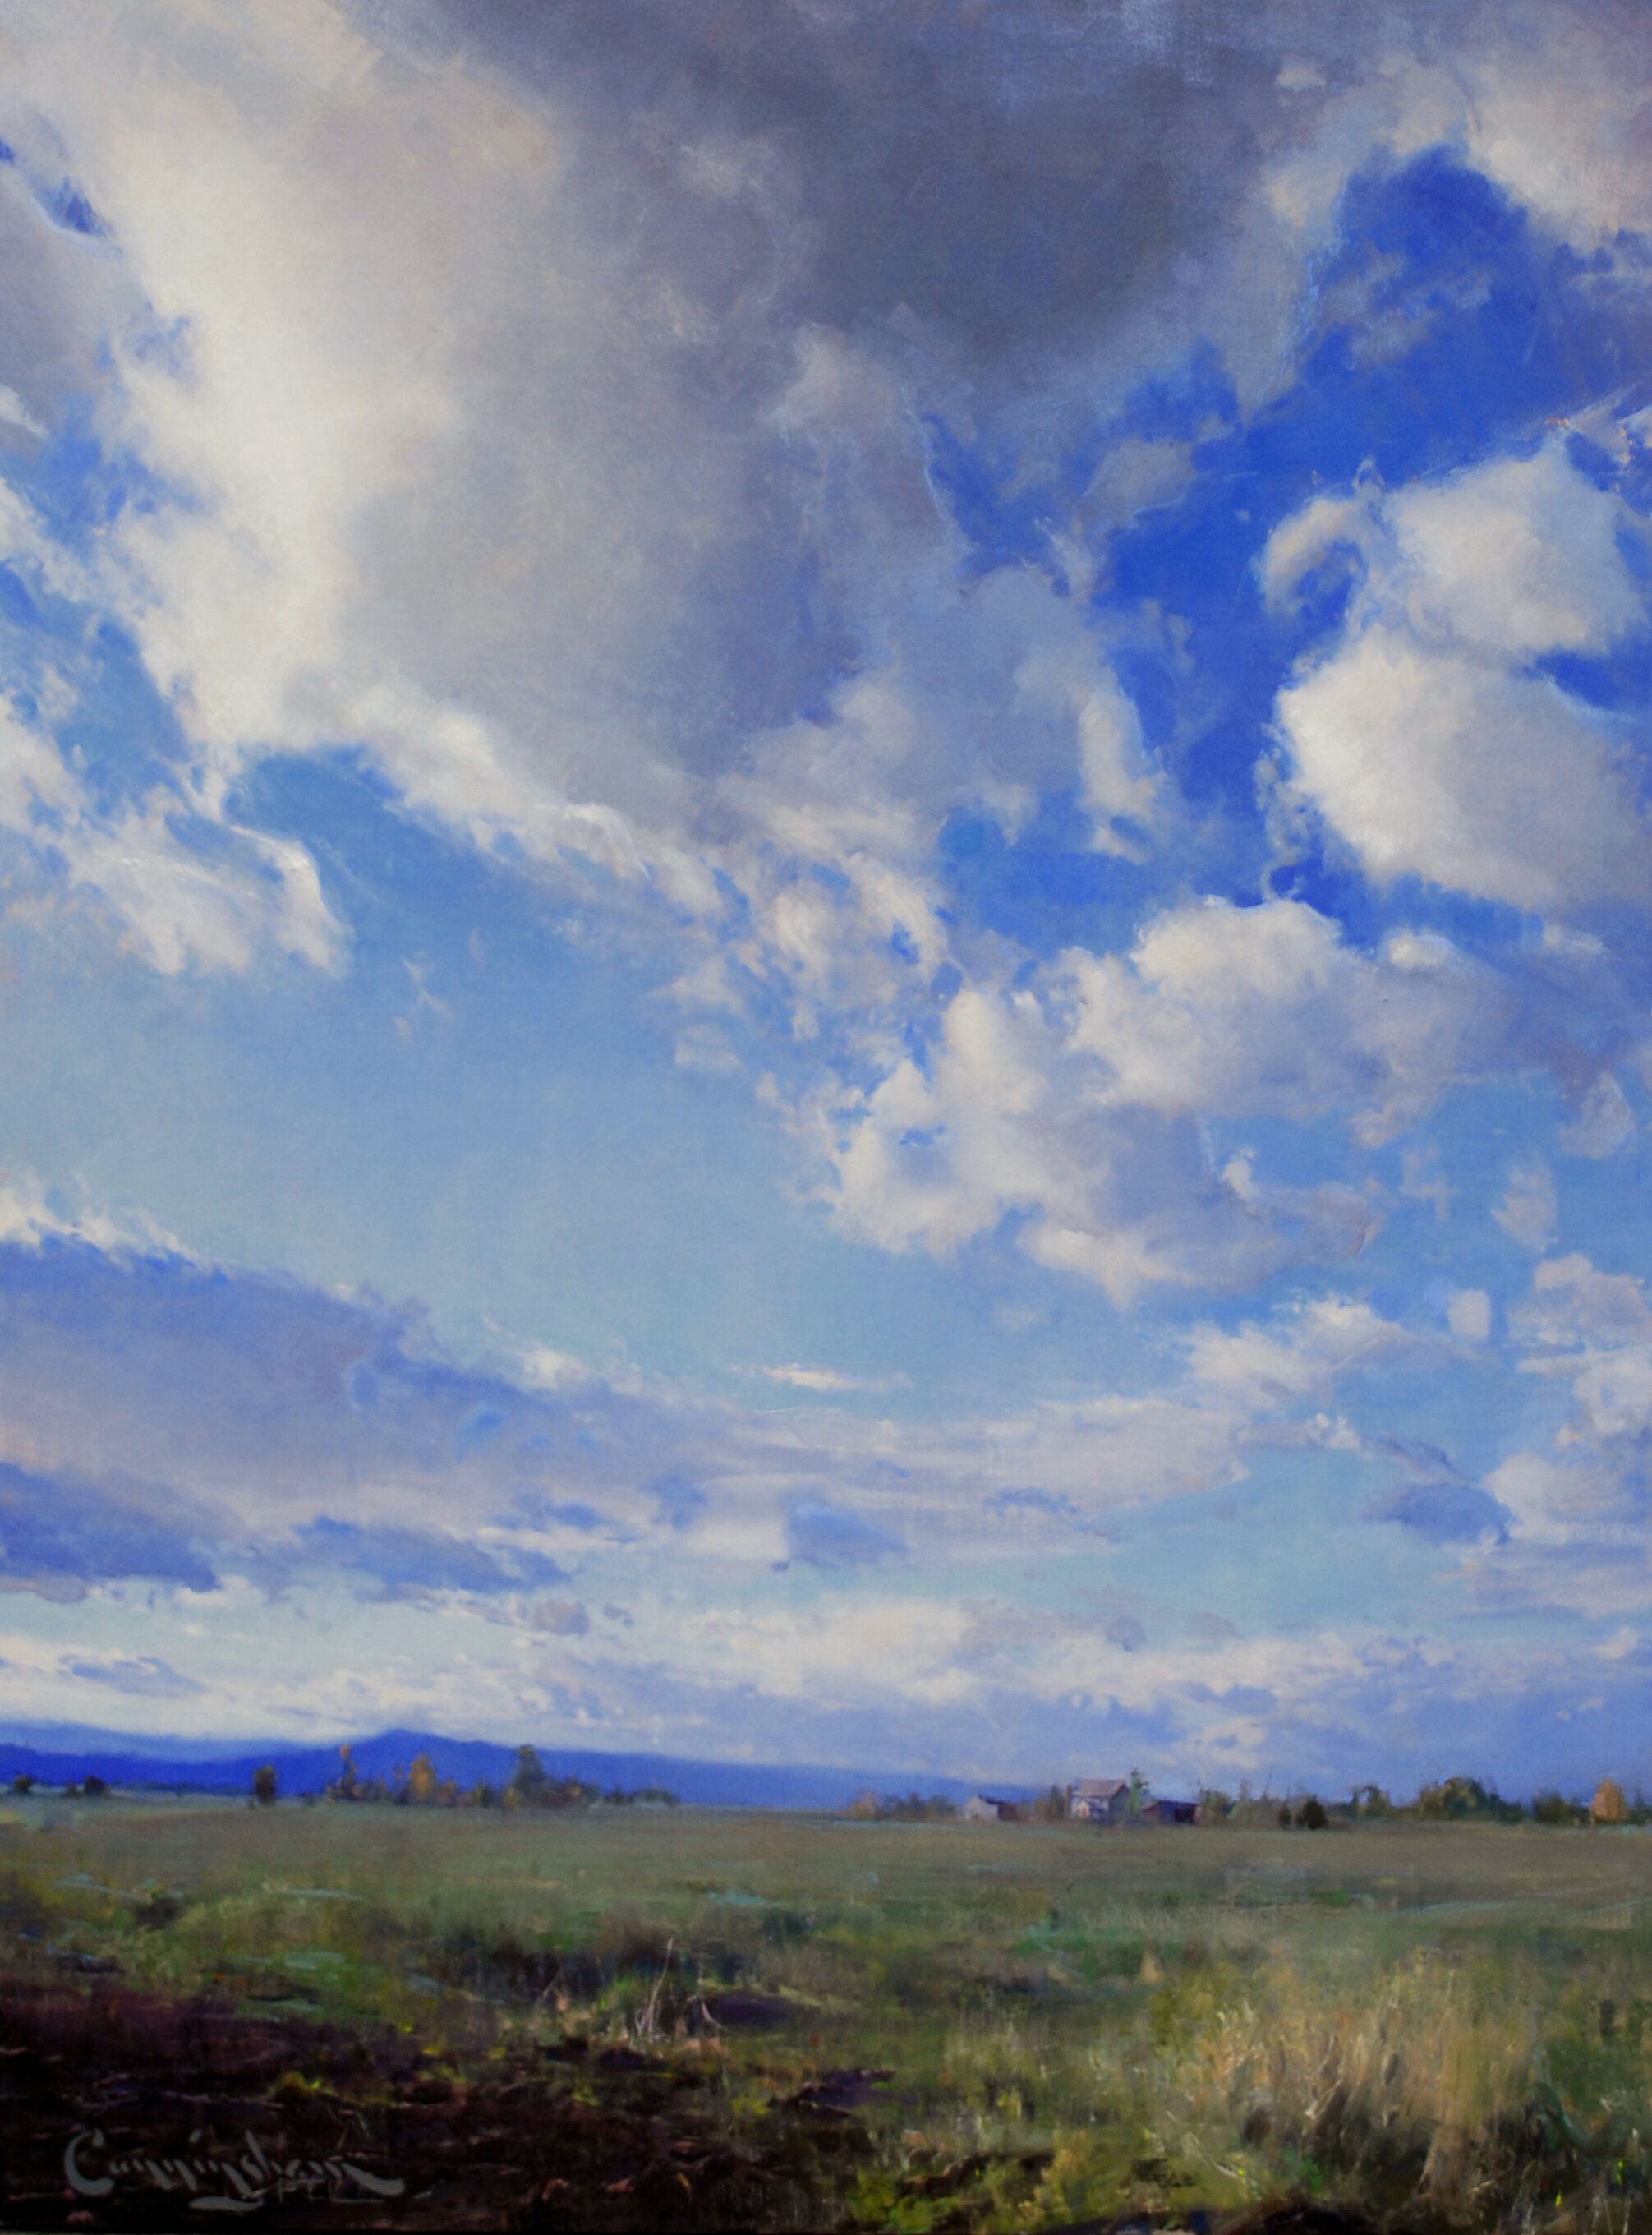 75 Addison Skies, Oil on Linen, 36 x 48 inches, 2012.jpg